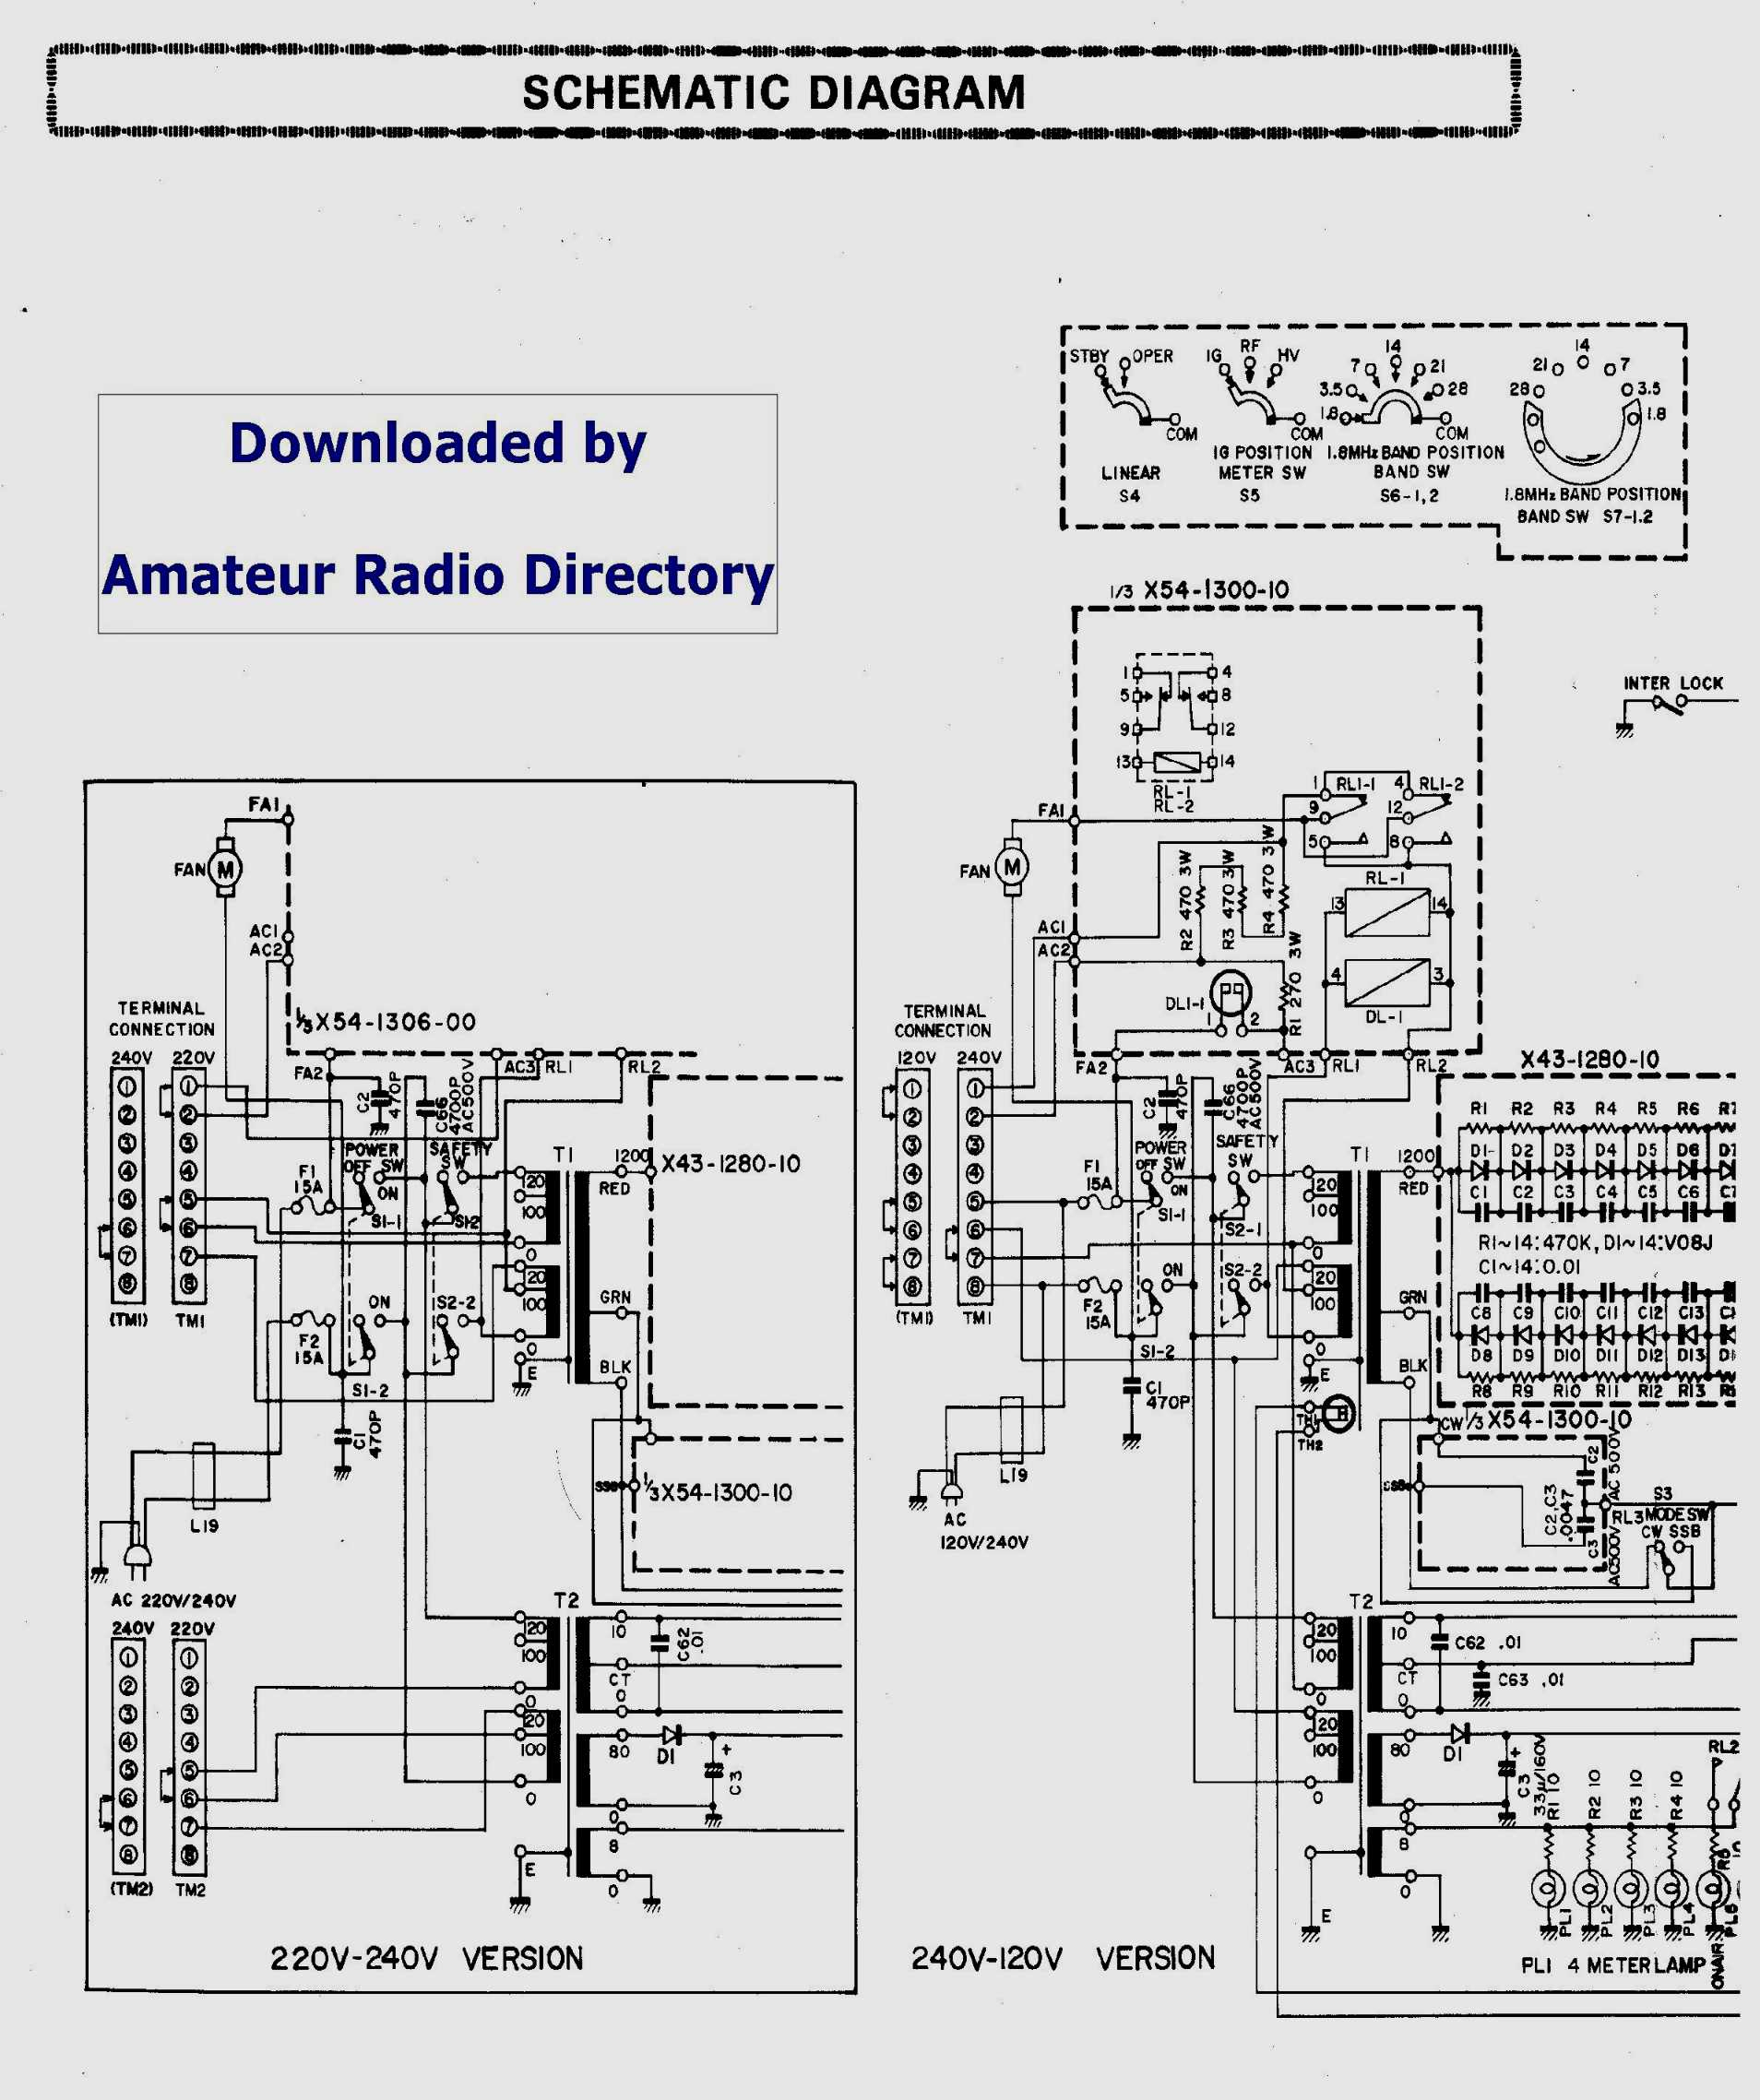 Kdc 248U Wiring Diagram - Detailed Wiring Diagram - Kenwood Kdc 248U Wiring Diagram